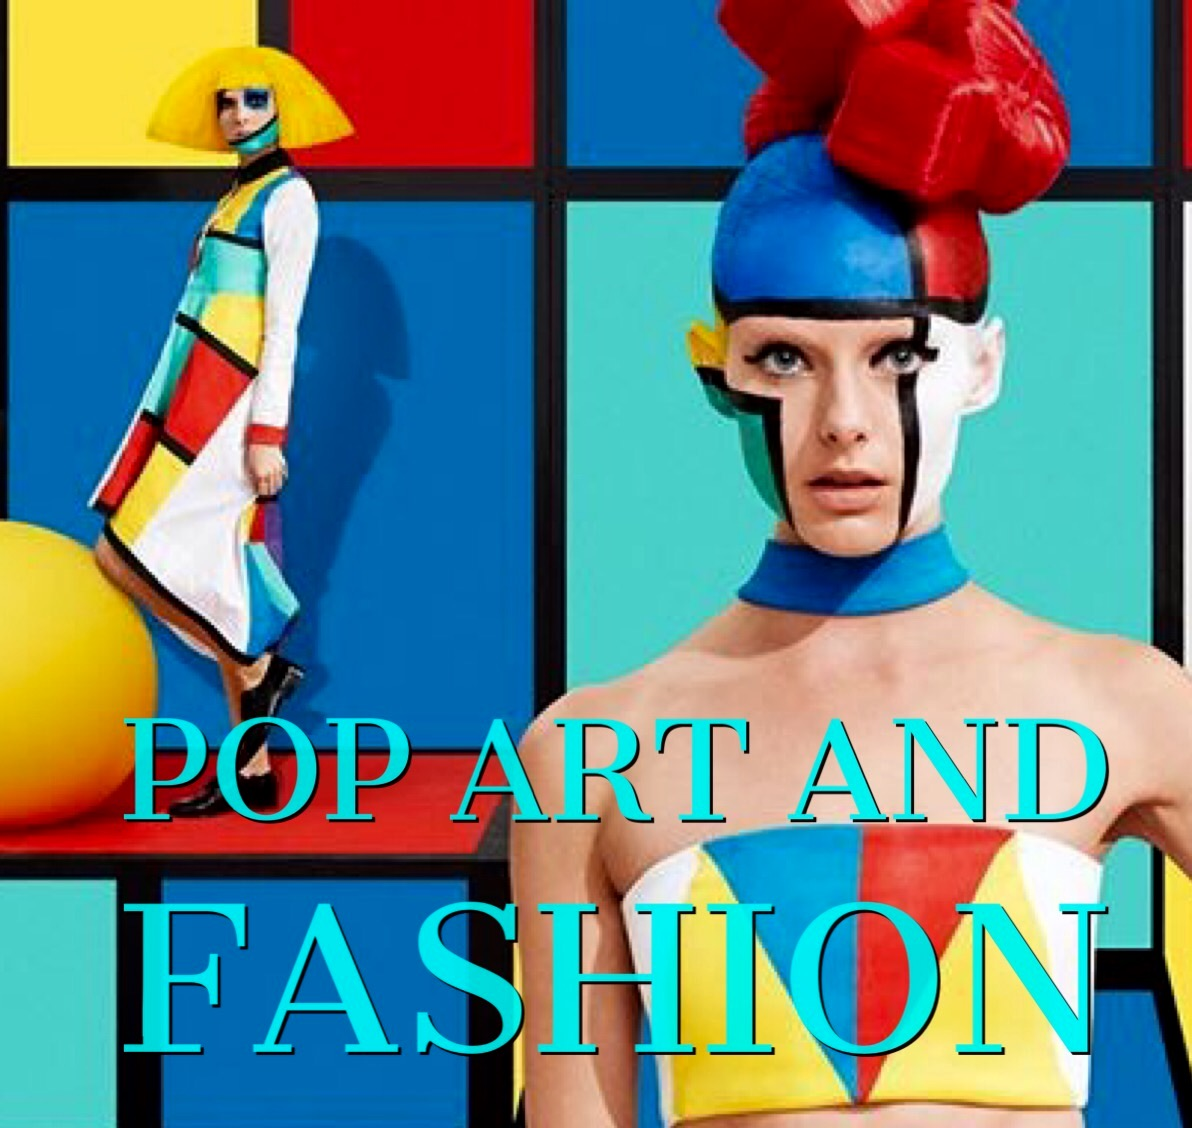 Pop Art and Fashion